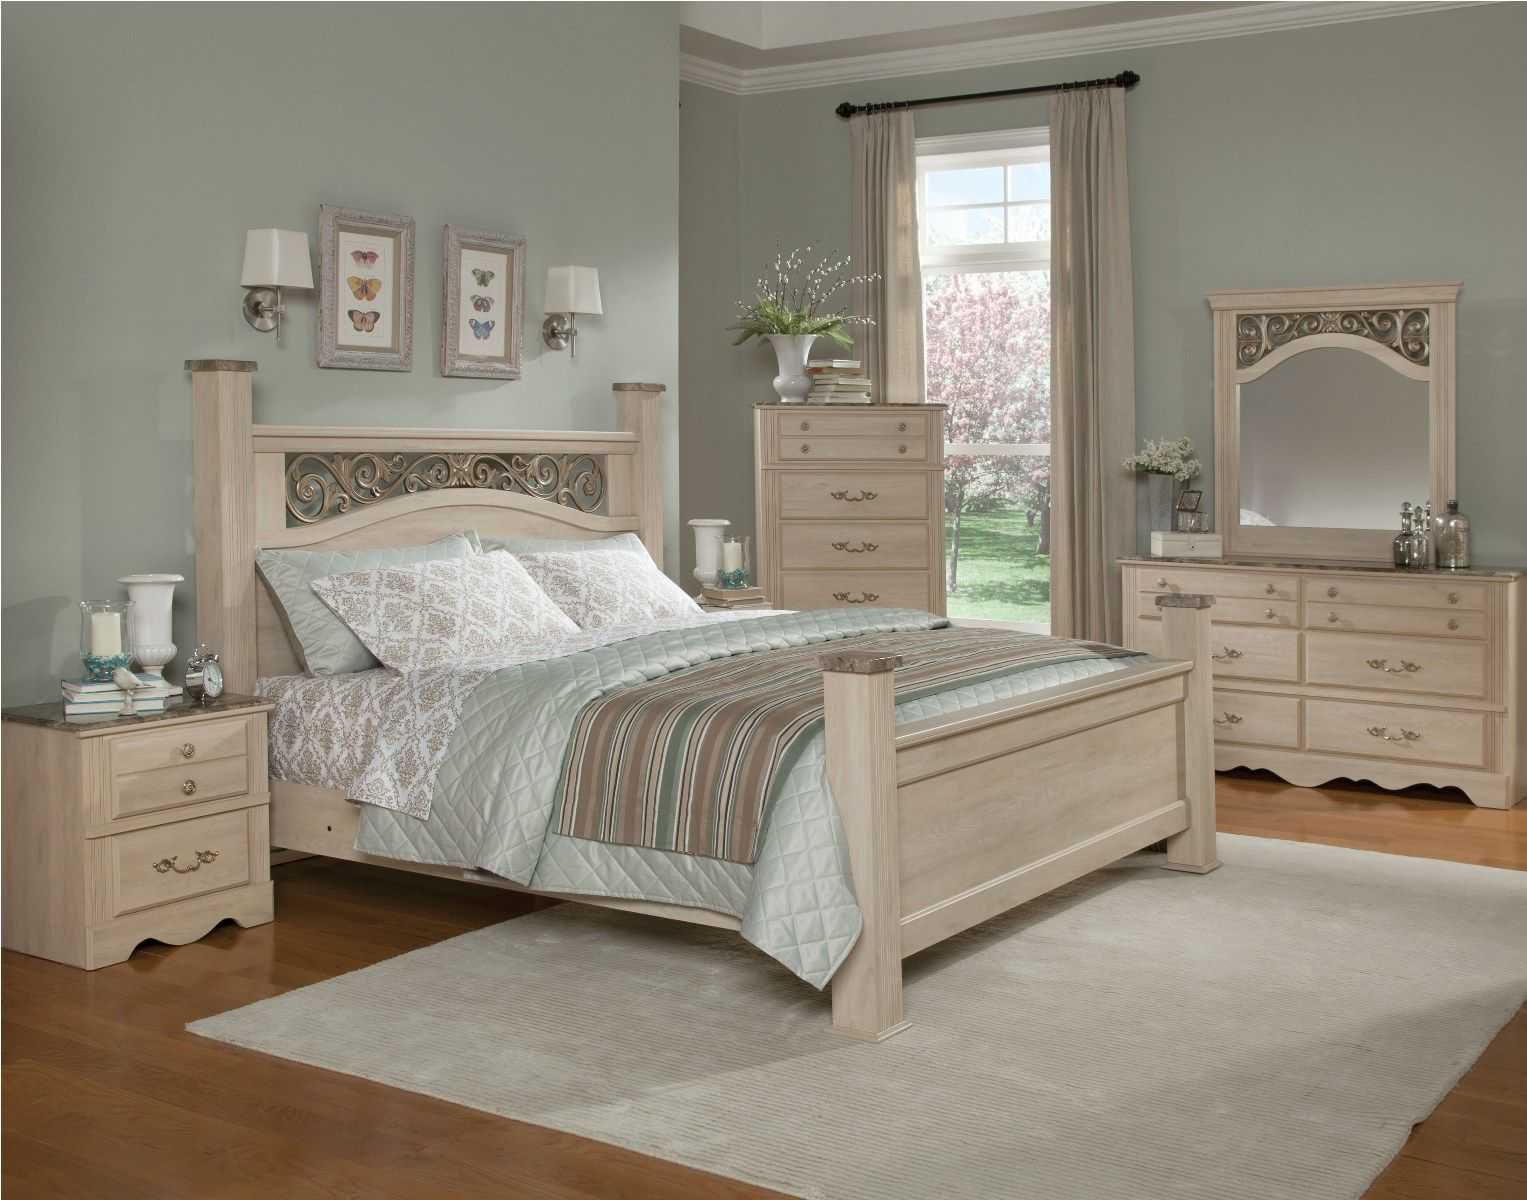 Taft Furniture Bedroom Sets Standard Furniture Torina Poster Bedroom Set In Light Cream